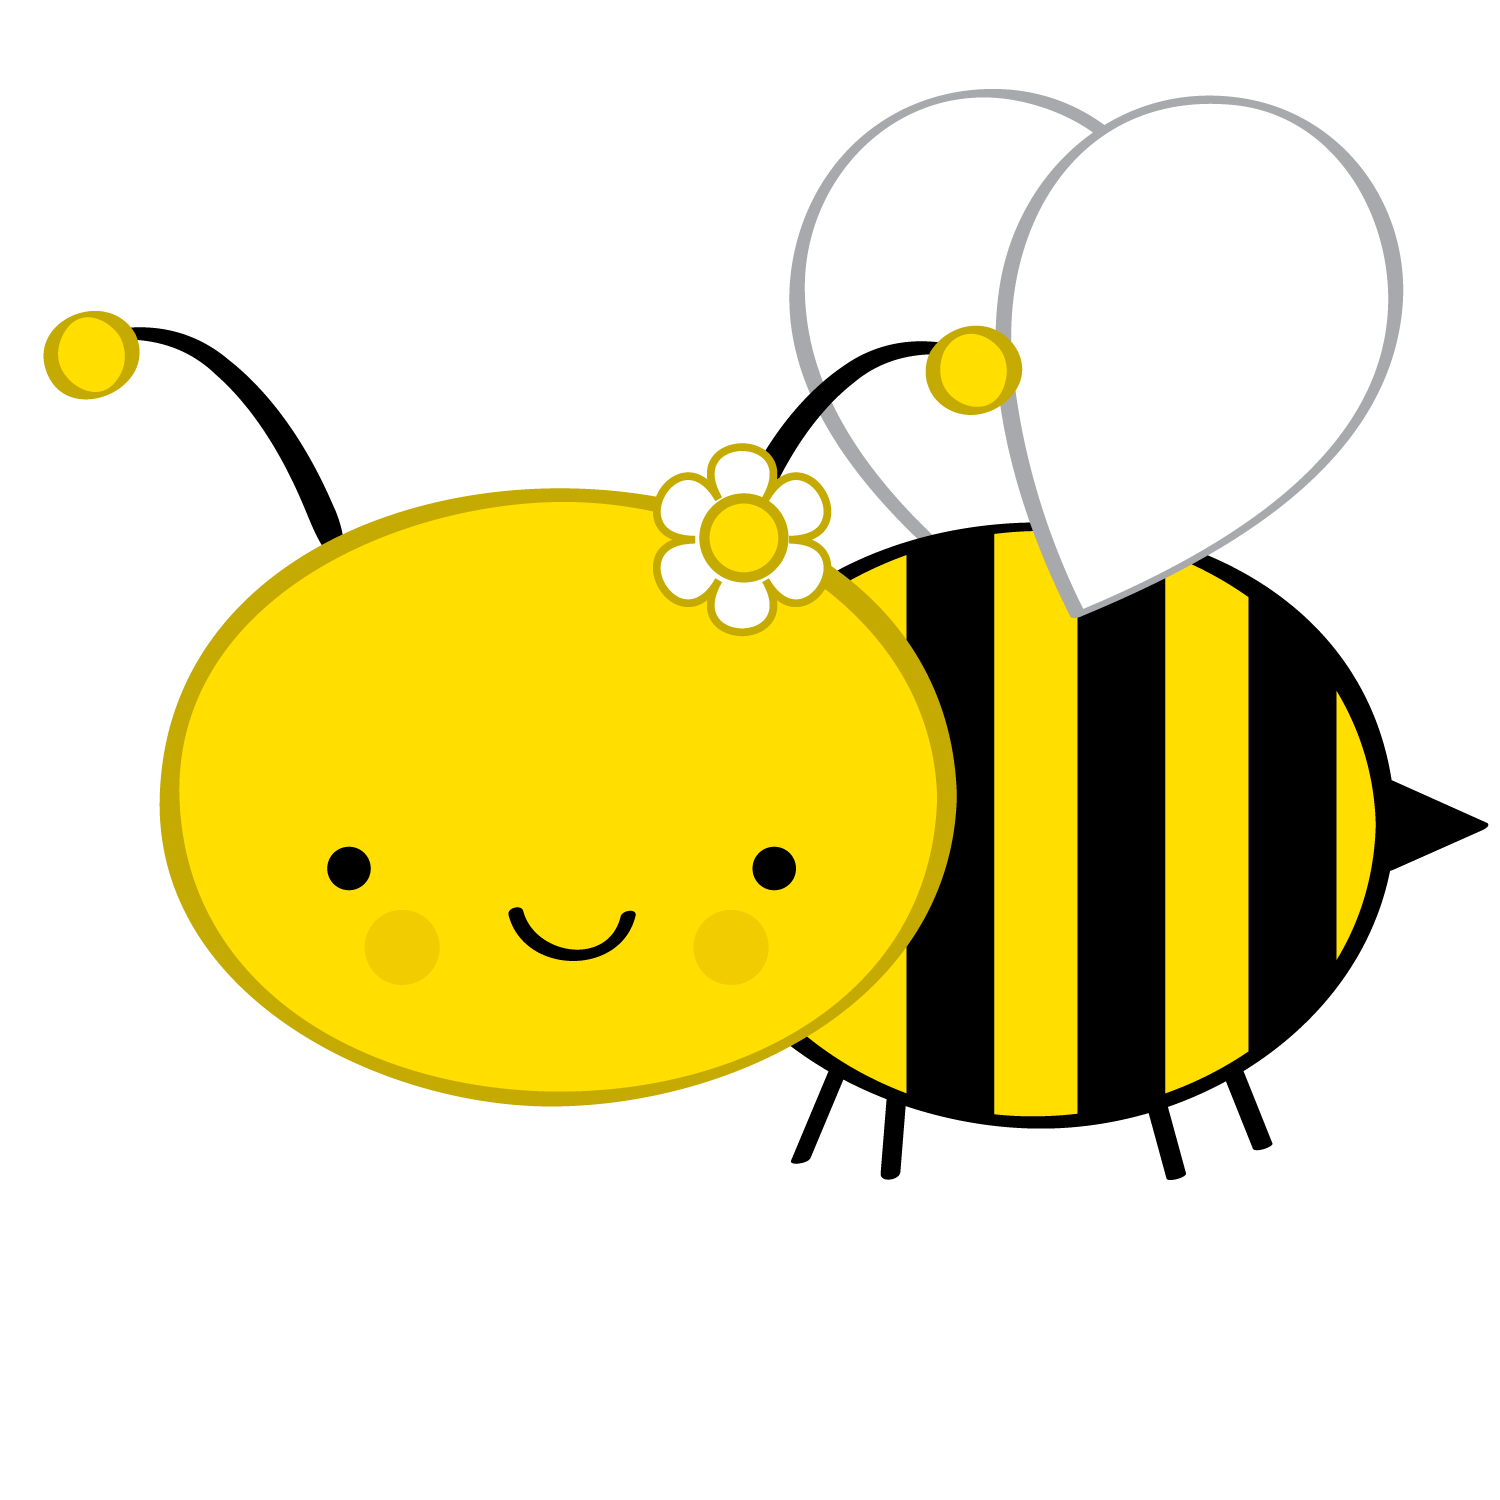 Abelhinhas png minus bees. Clipart bee circle